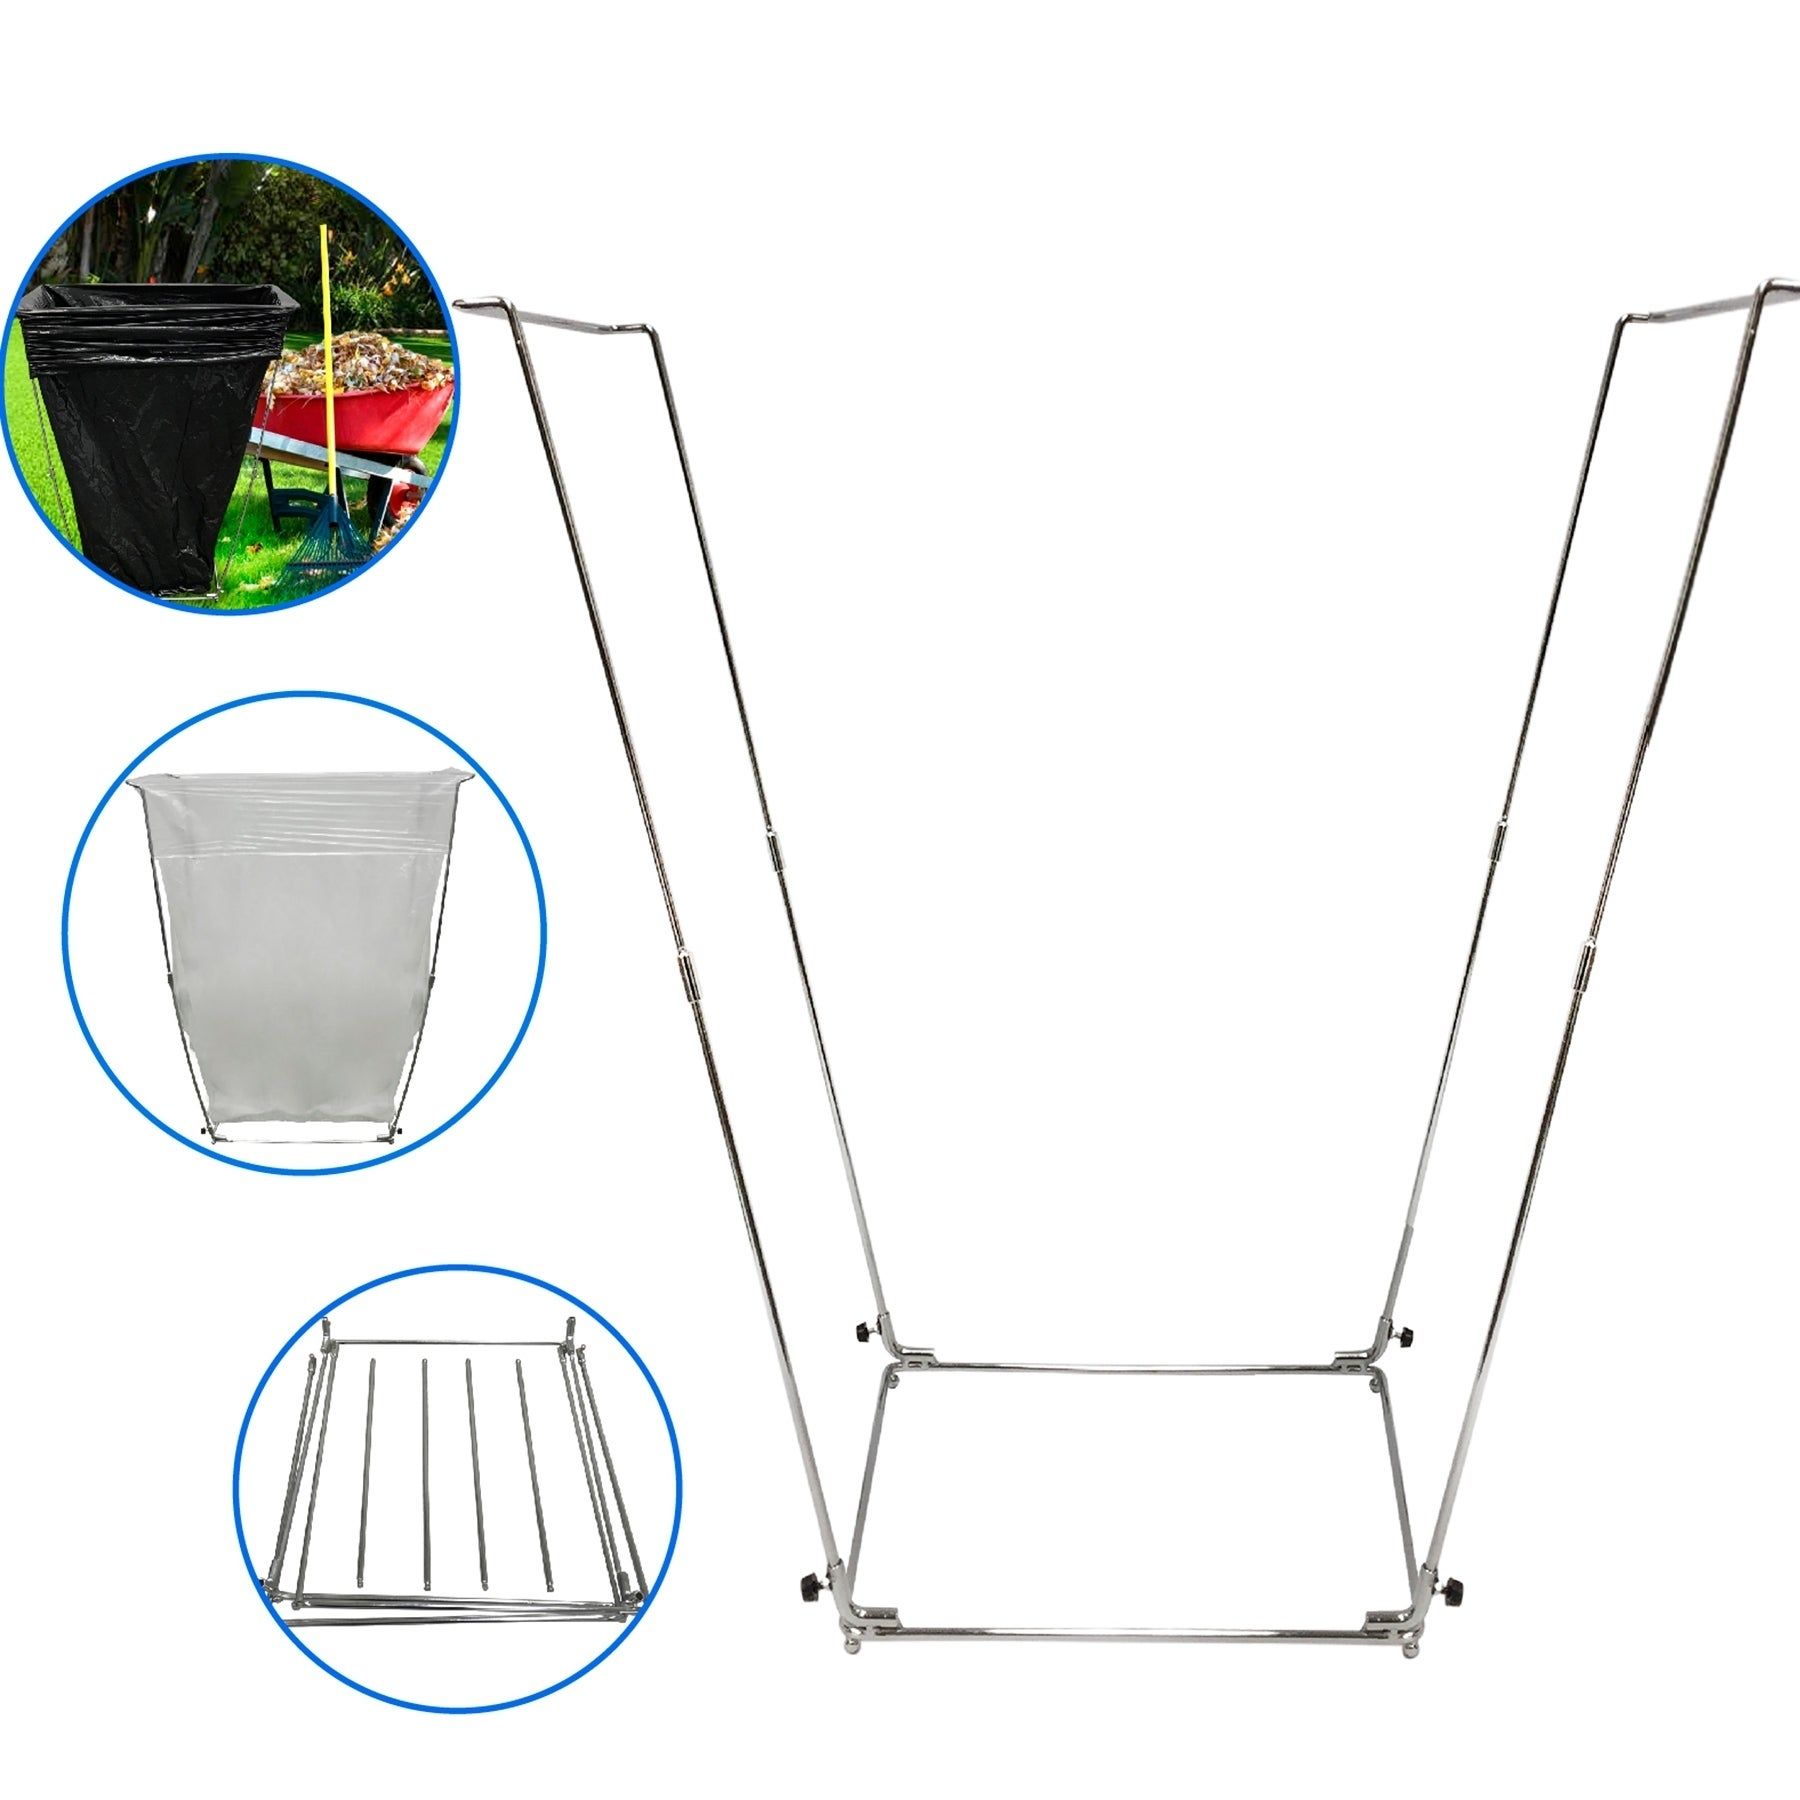 Easygo Trash Bag Holder Leaf Stand Multi Use Garbage Frame Holds 30 45 Gallon Bags Free Shipping On Orders Over